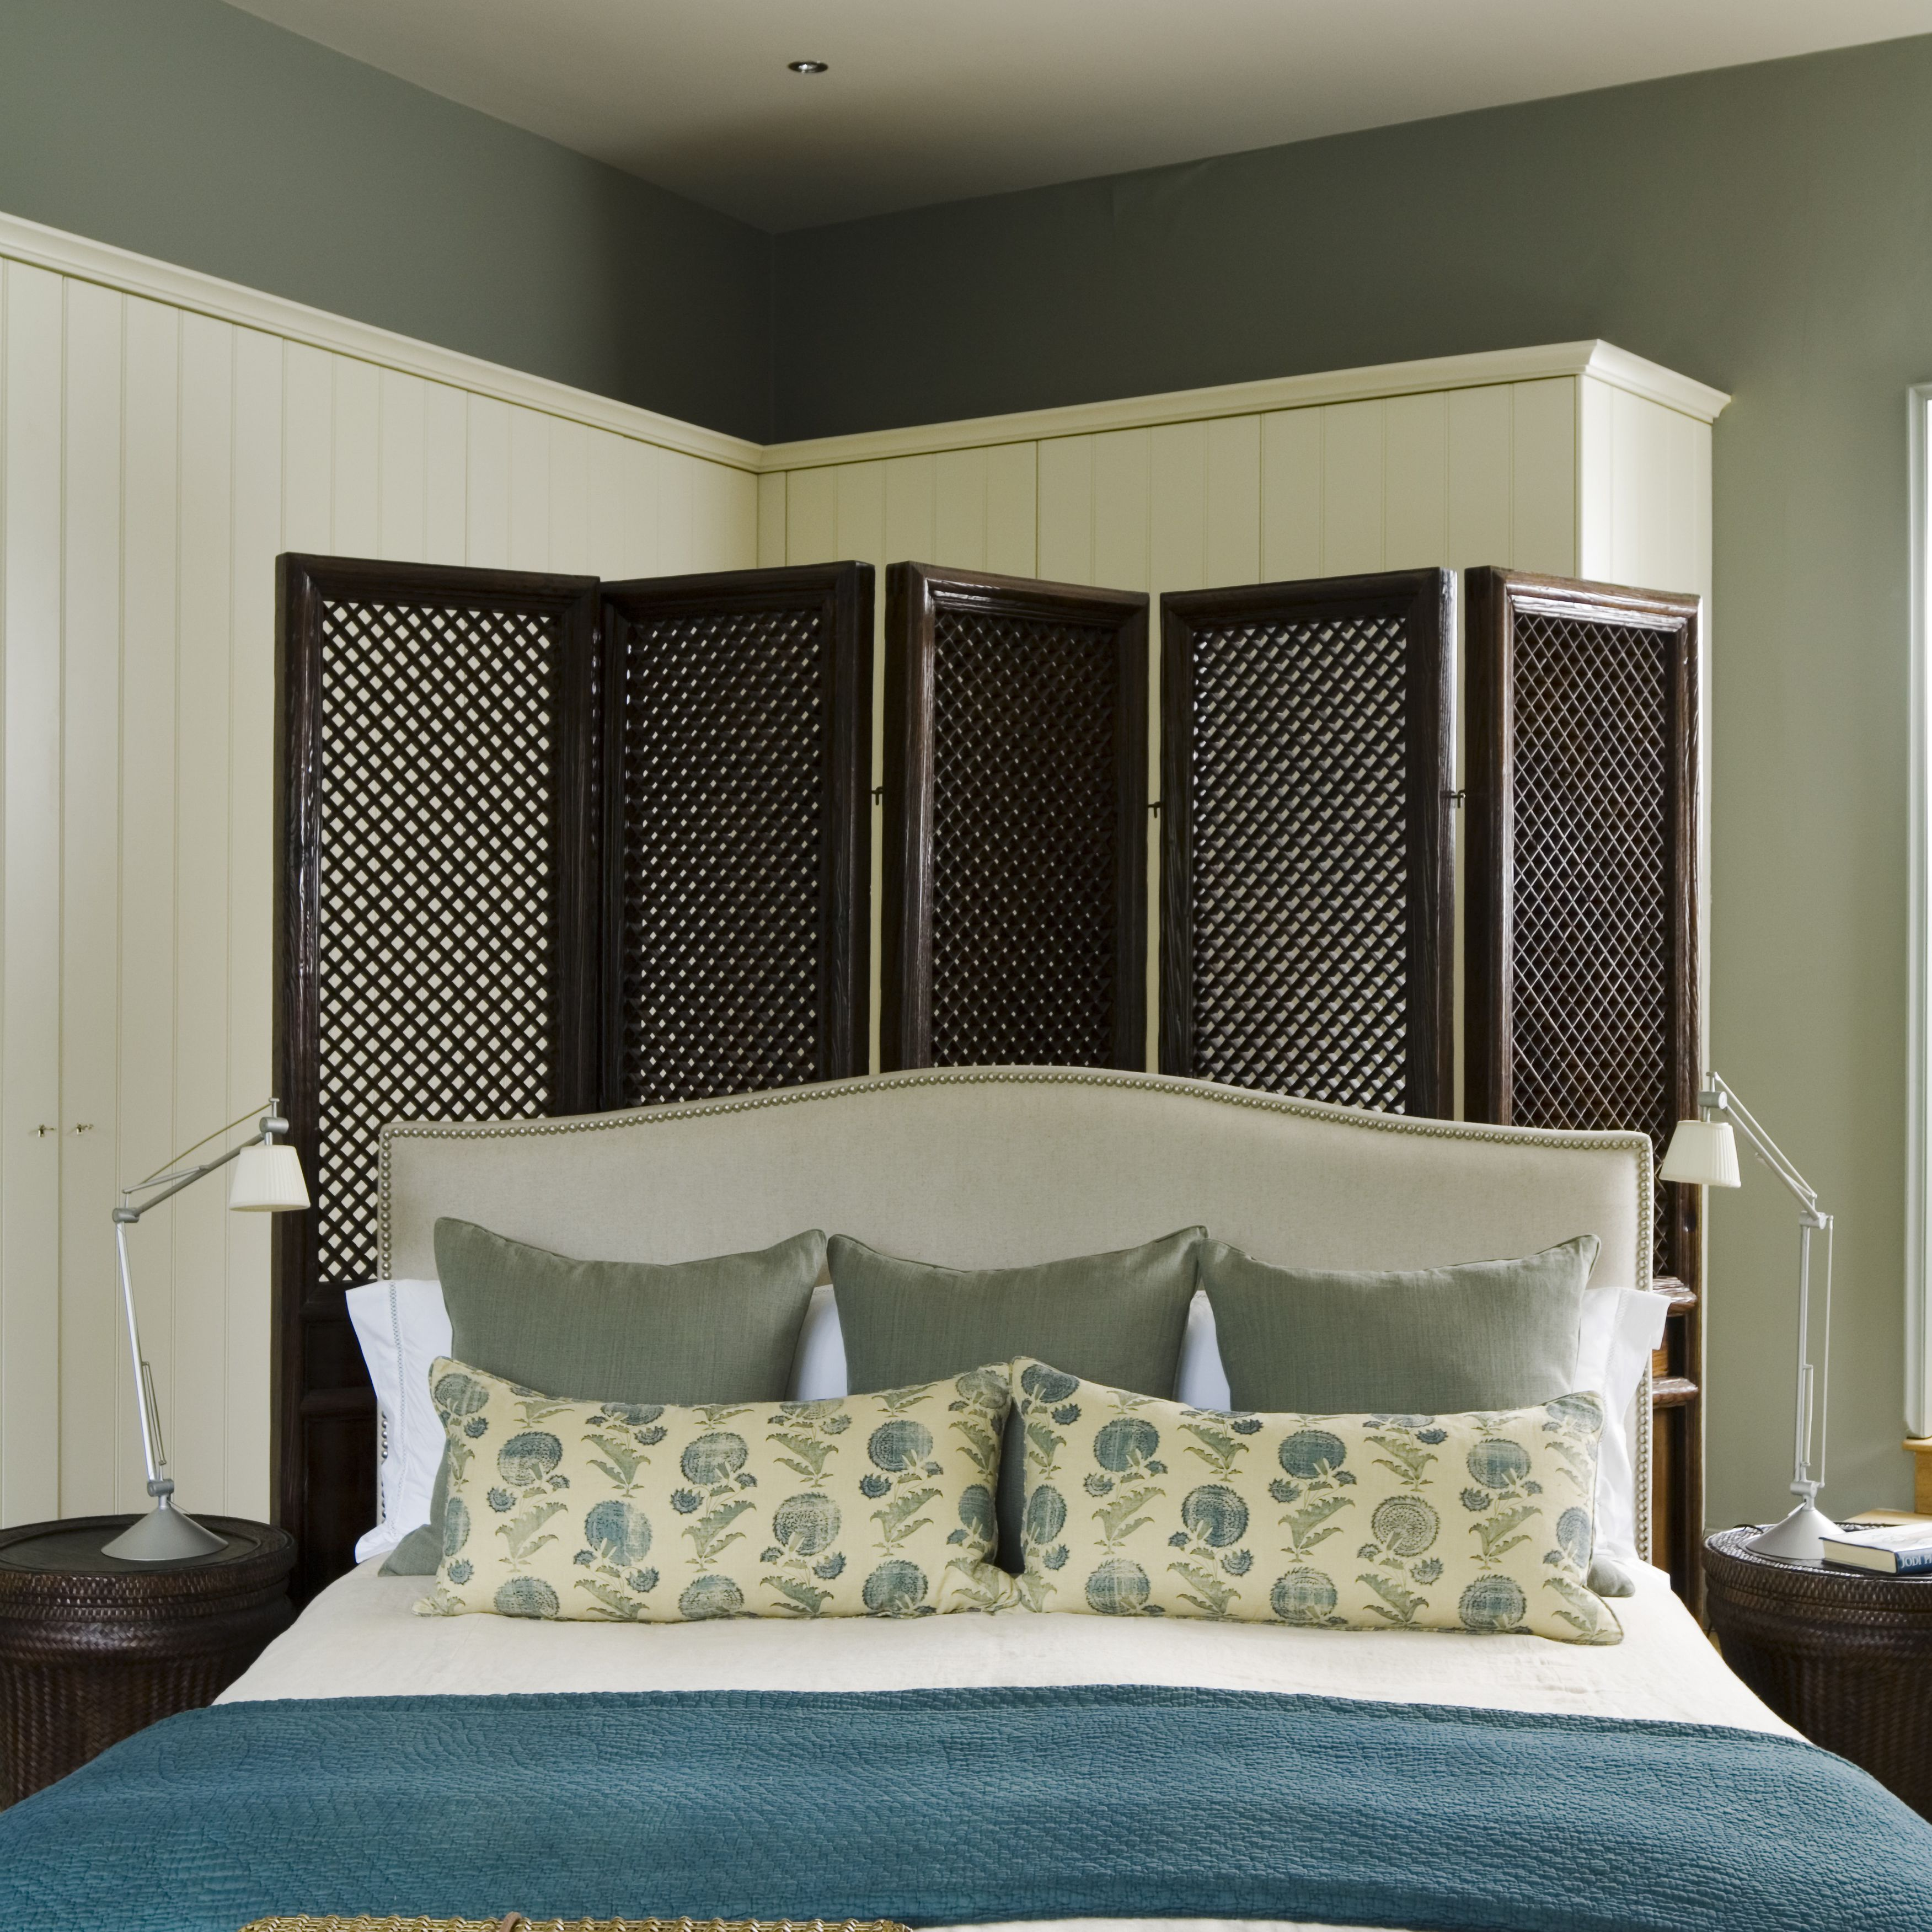 Bedroom with folding screen